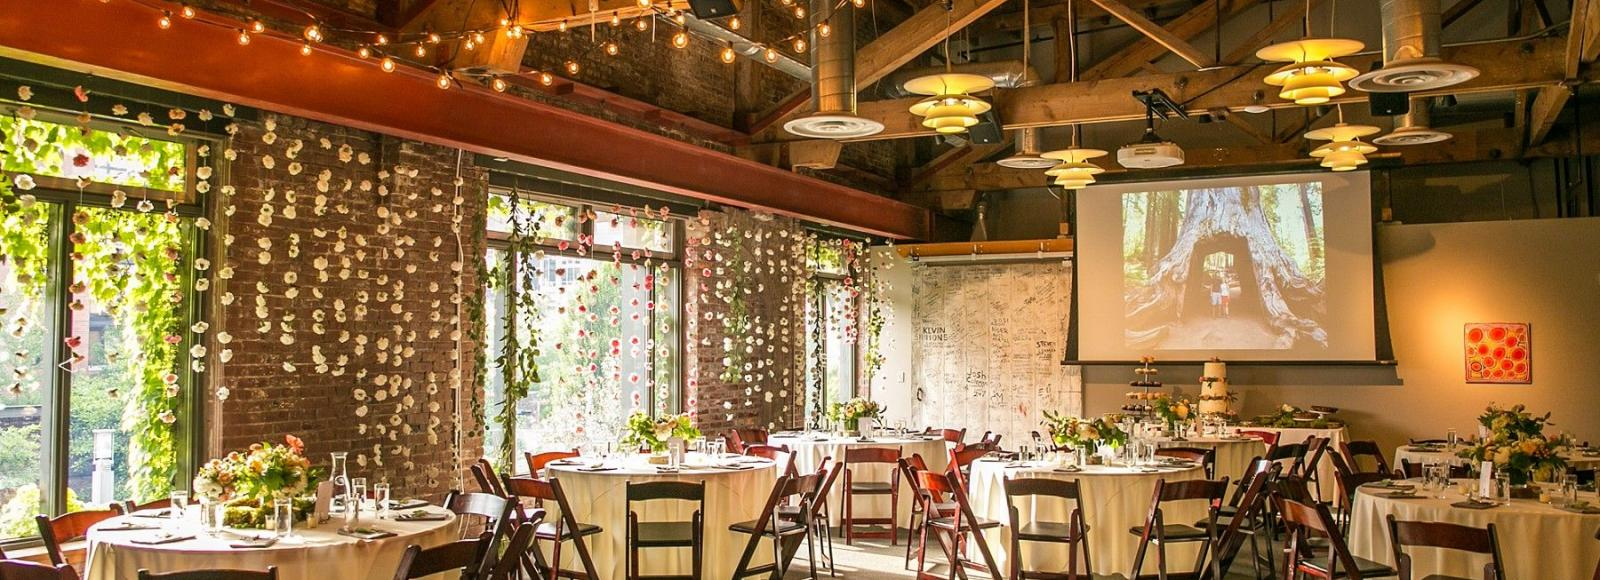 Dance floor surrounded by round table seating with hanging lights and high ceiling beams in the Ecotrust conference room